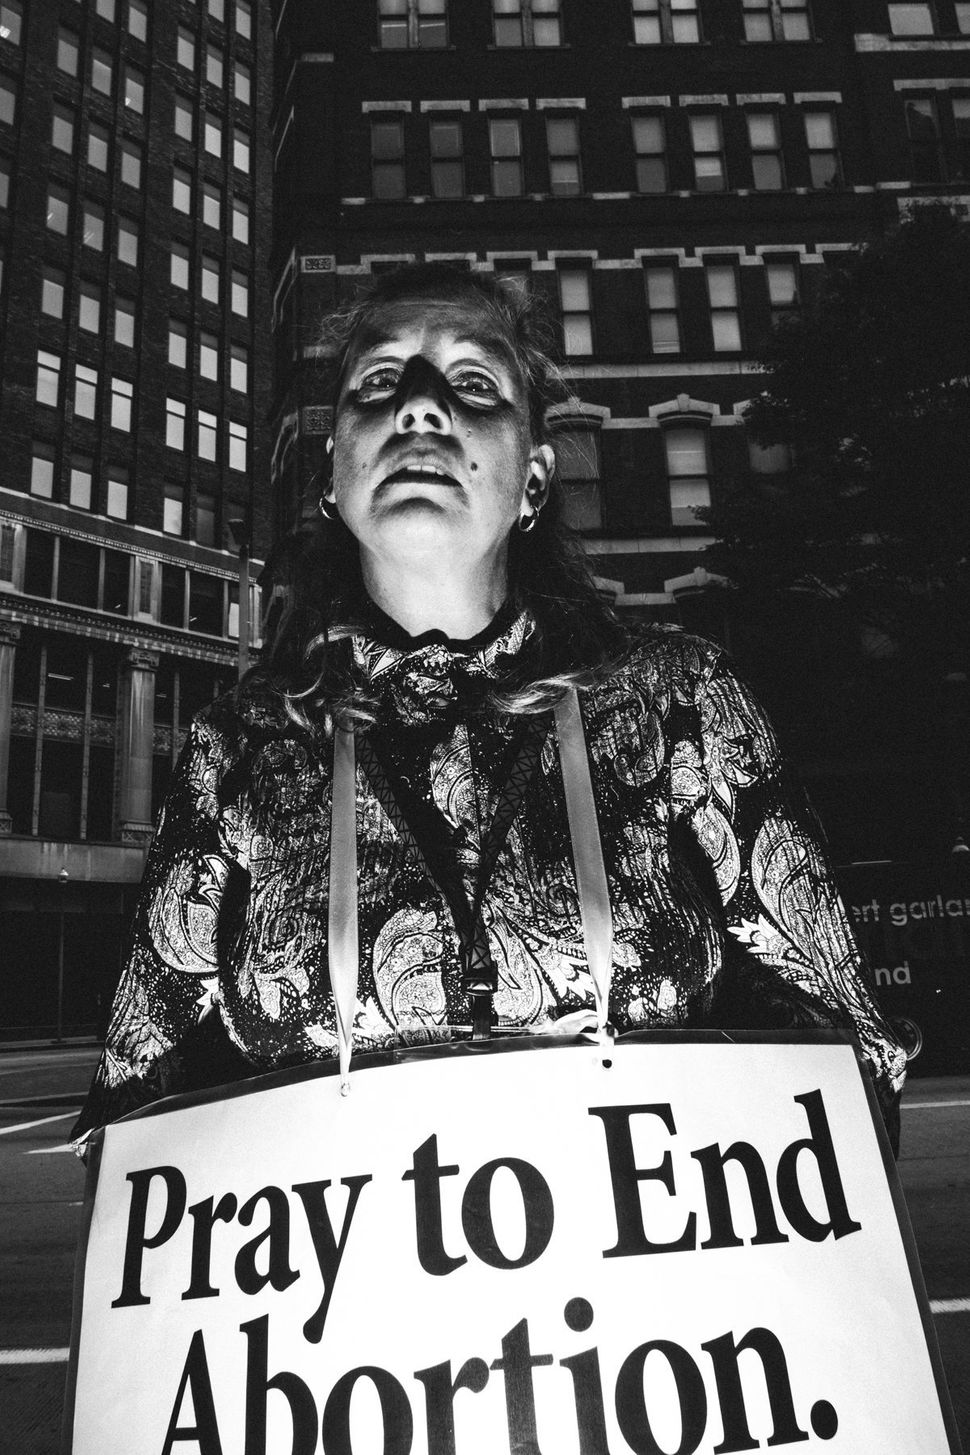 October 6th, 2015 - 40 Days for Life protester outside of Planned Parenthood on Liberty Avenue in Pittsburgh, PA.